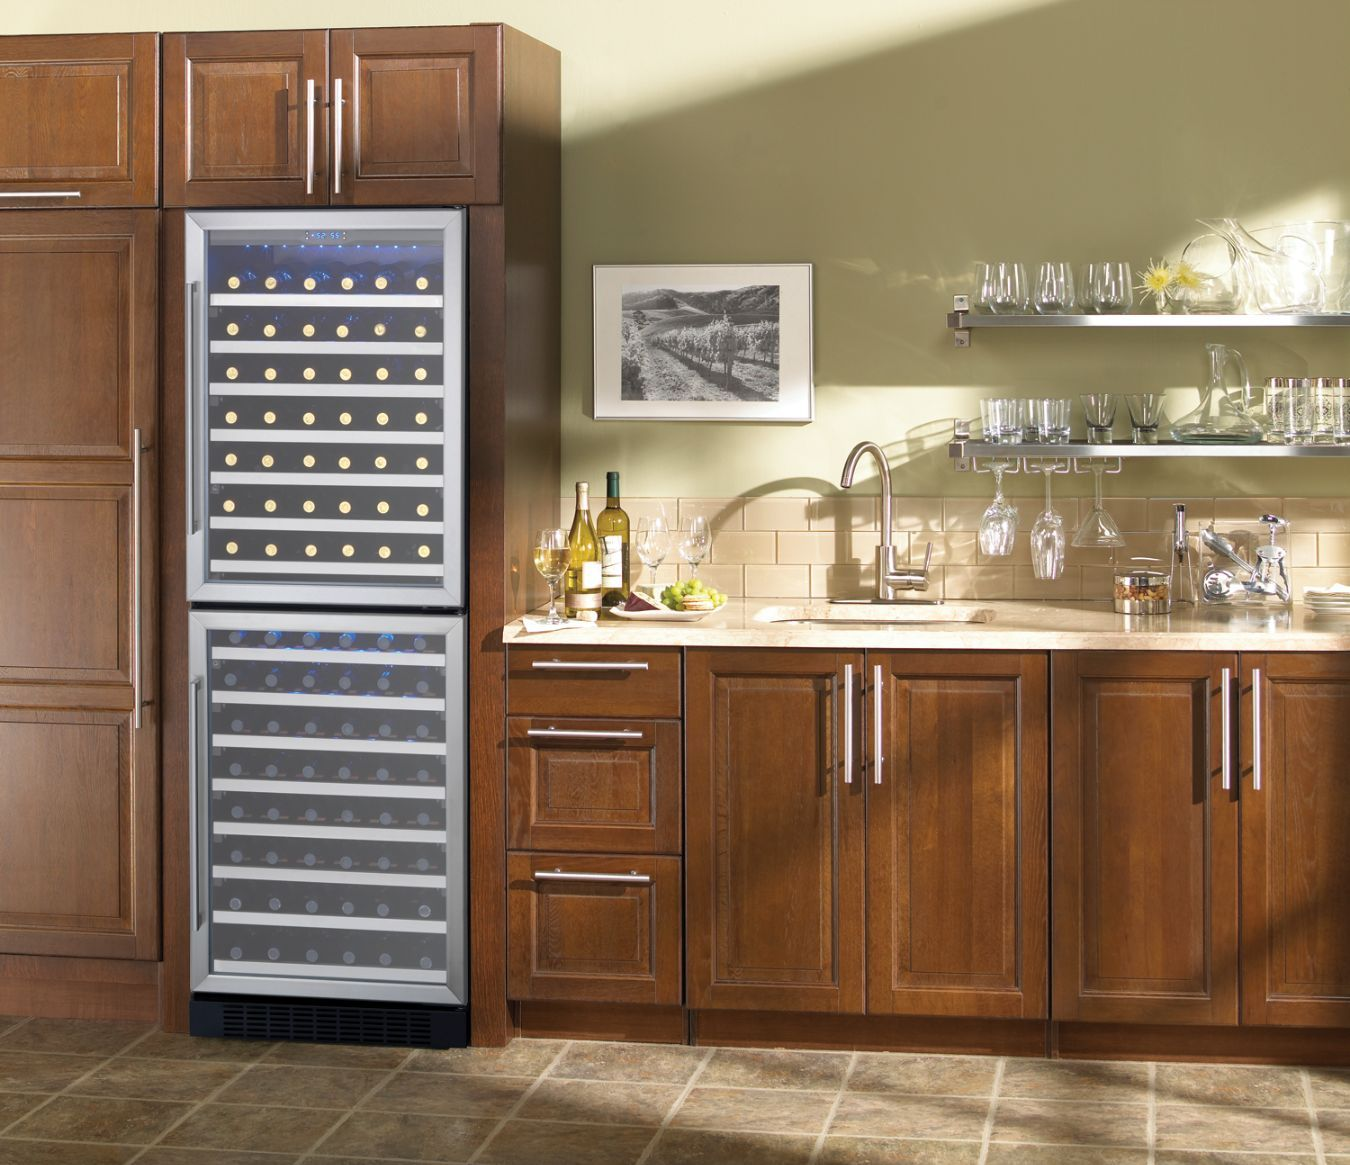 Under Counter Wine And Beverage Cooler With Ice Maker Installation